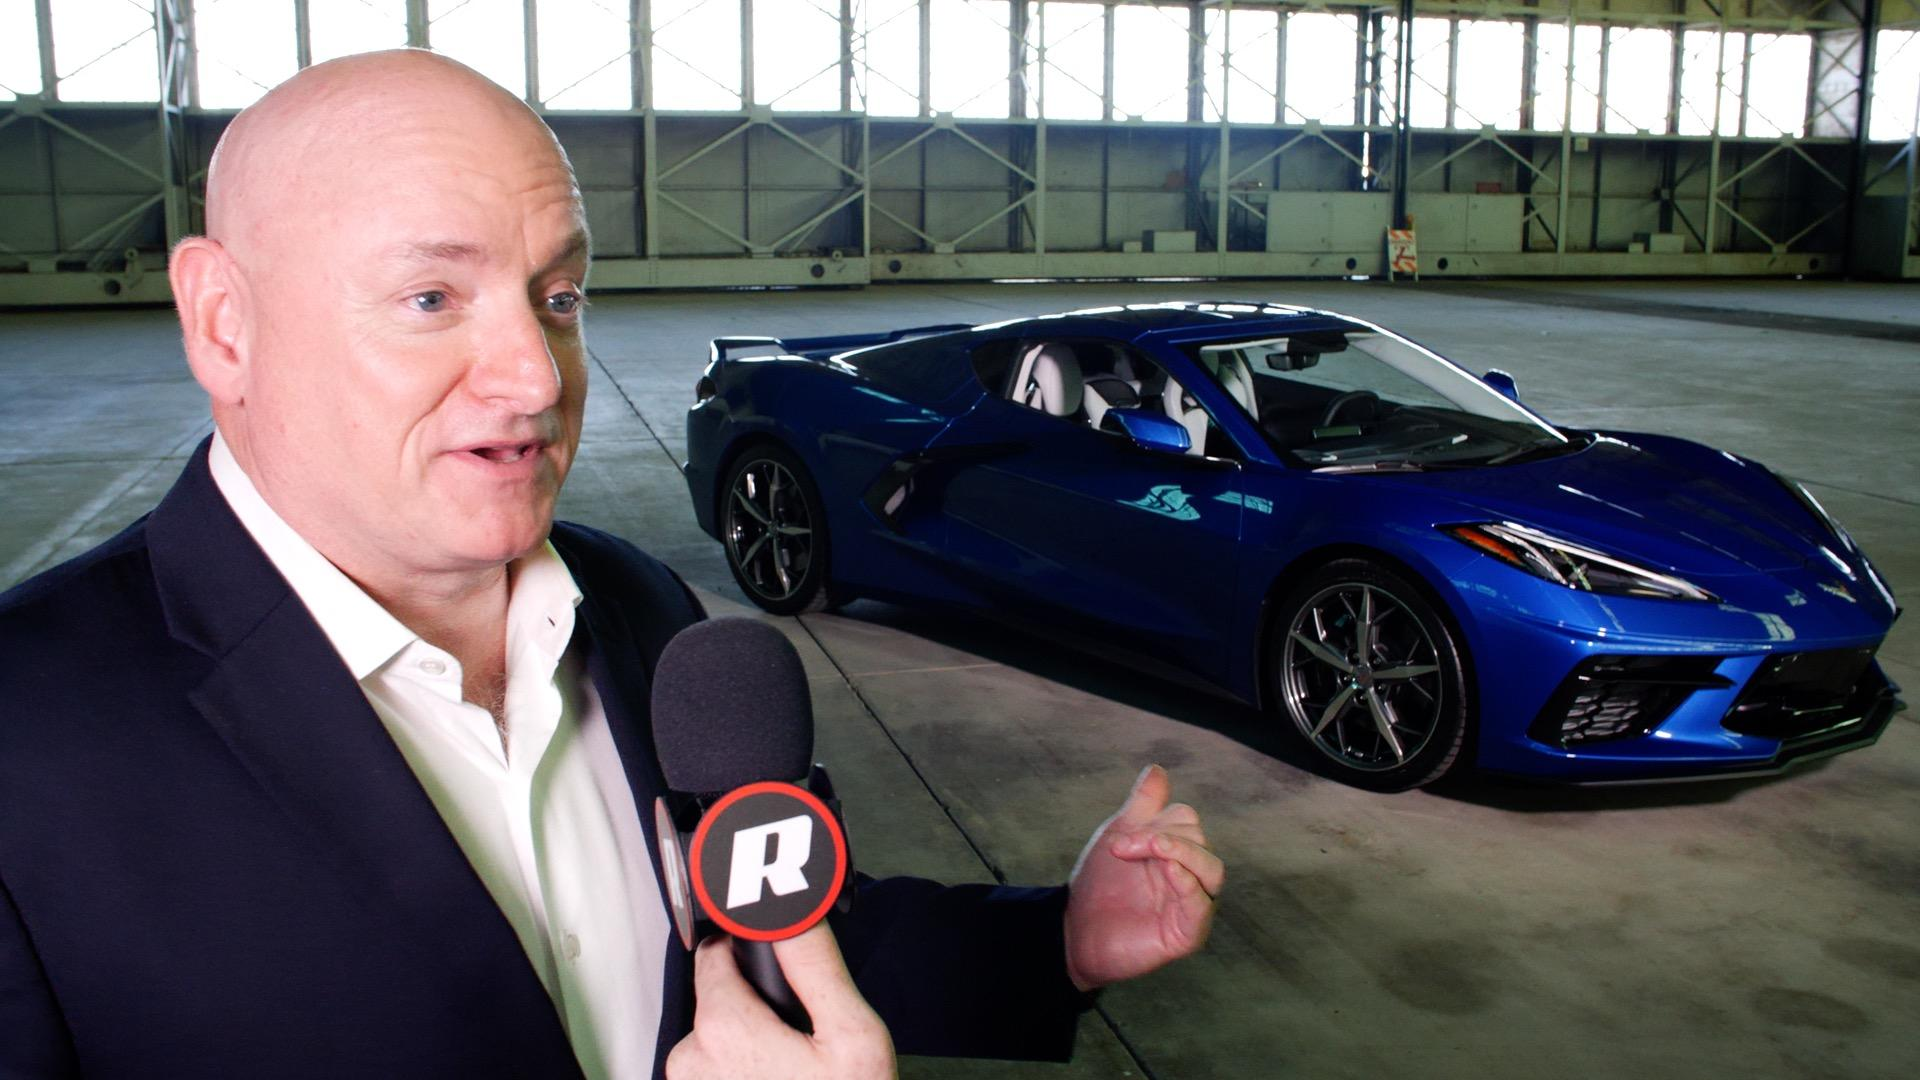 Video: NASA astronaut Scott Kelly on Corvettes, manual transmissions and flat-earthers